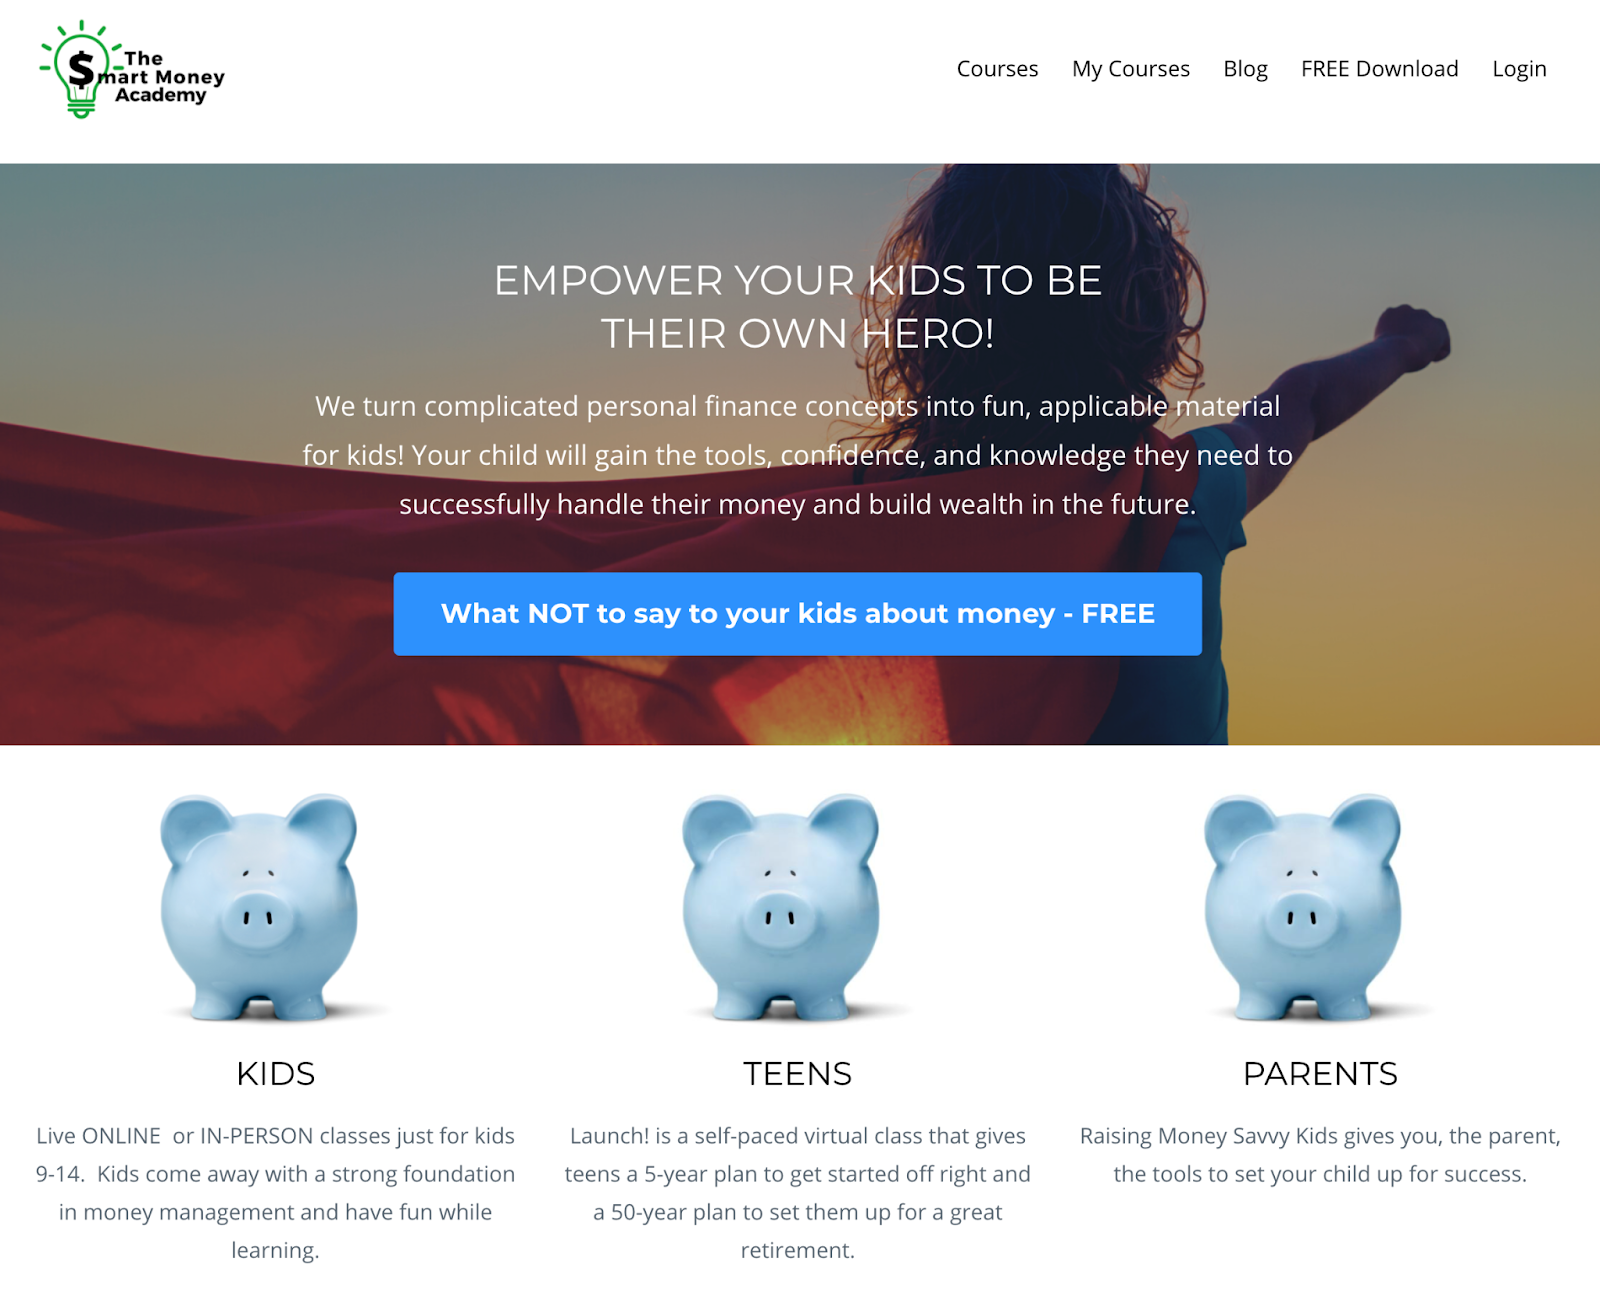 Screenshot of the Smart Money Academy website with a photo of a child and personal finance course offerings for kids, teens, and adults